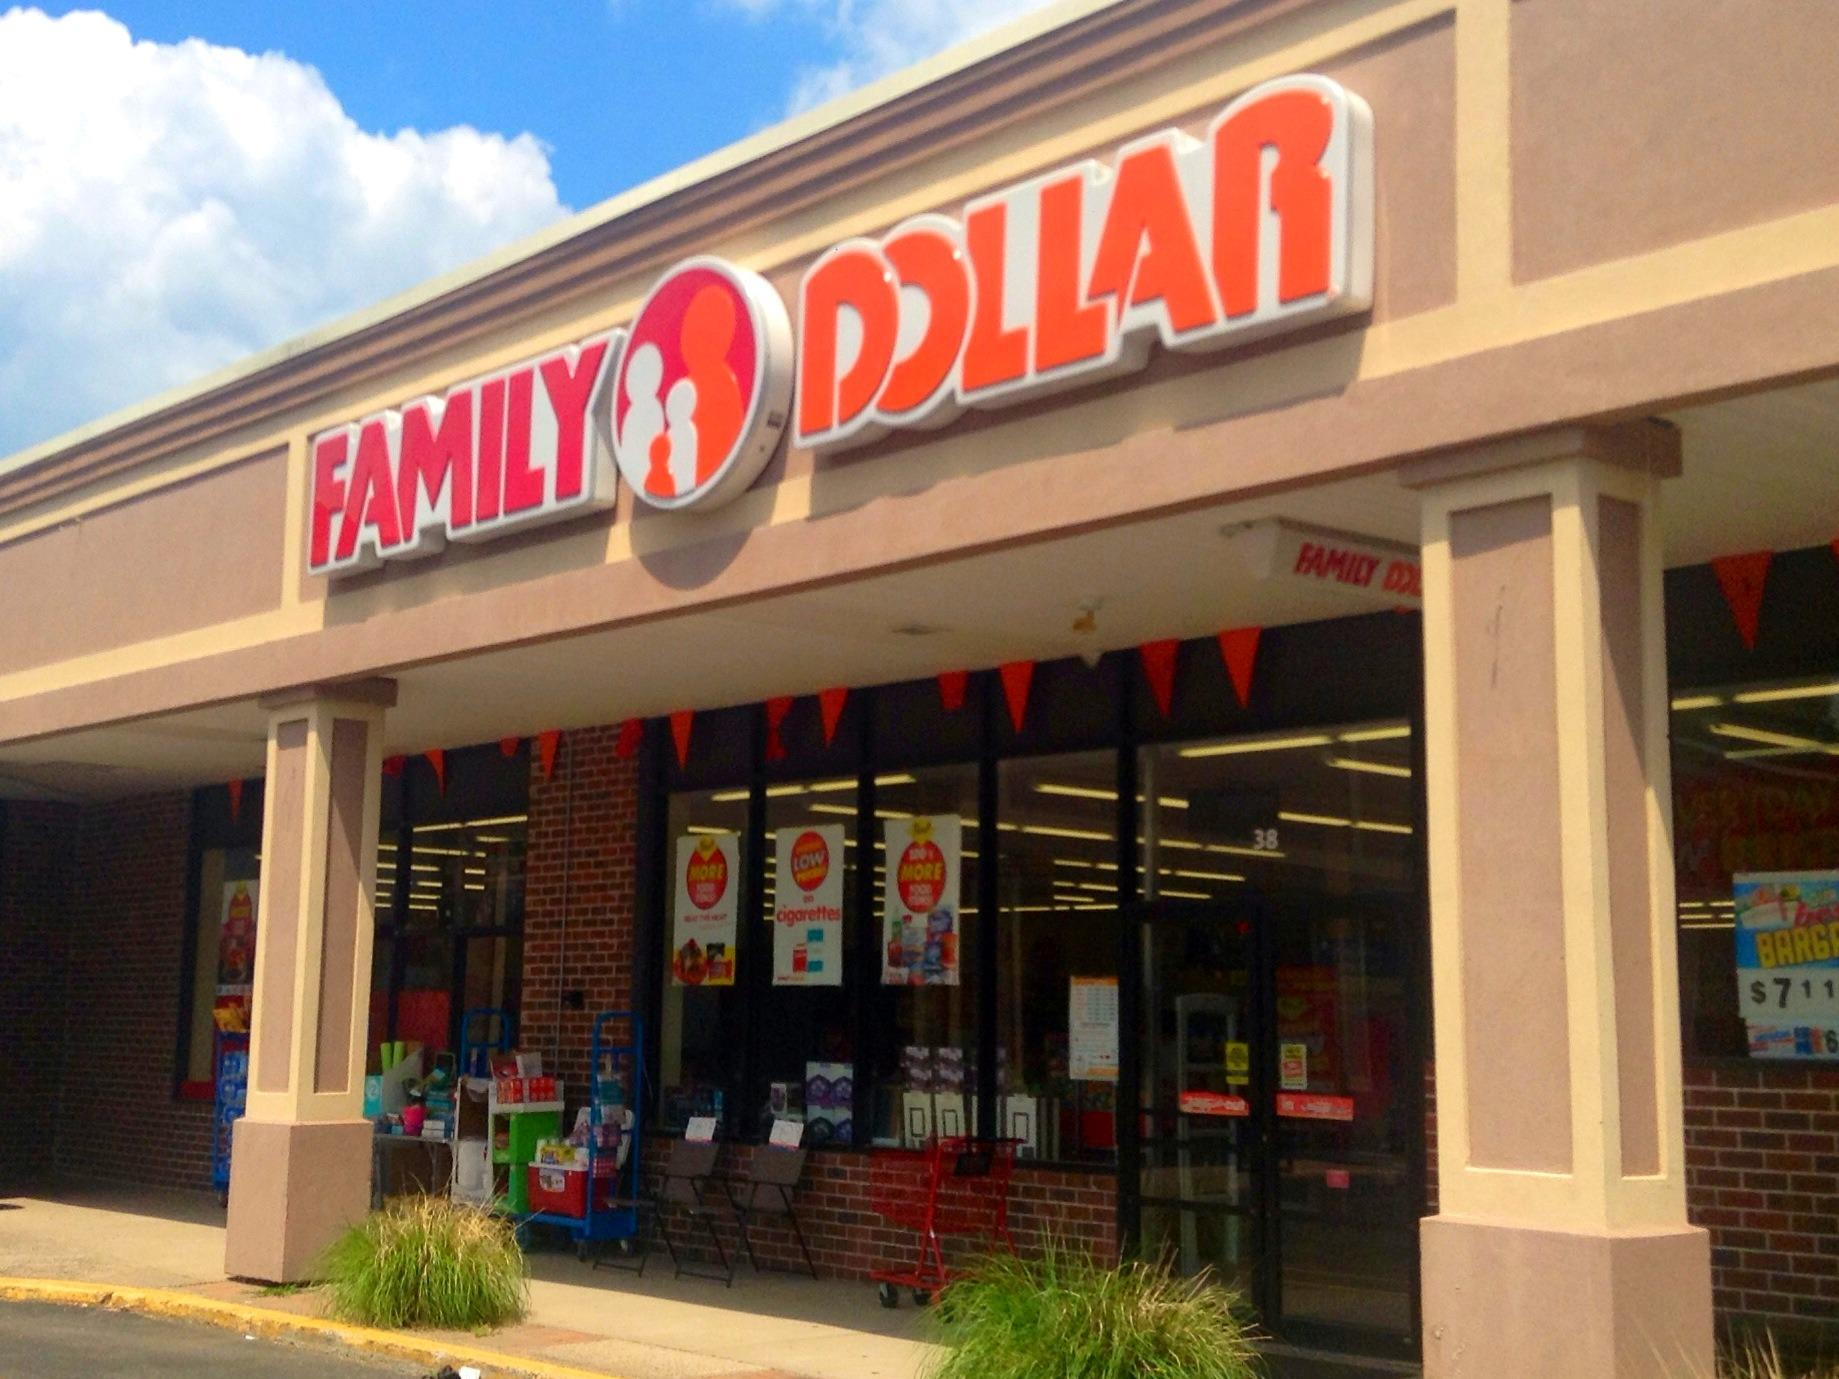 Dollar Tree To Close Up To 390 Family Dollar Stores | WFAE